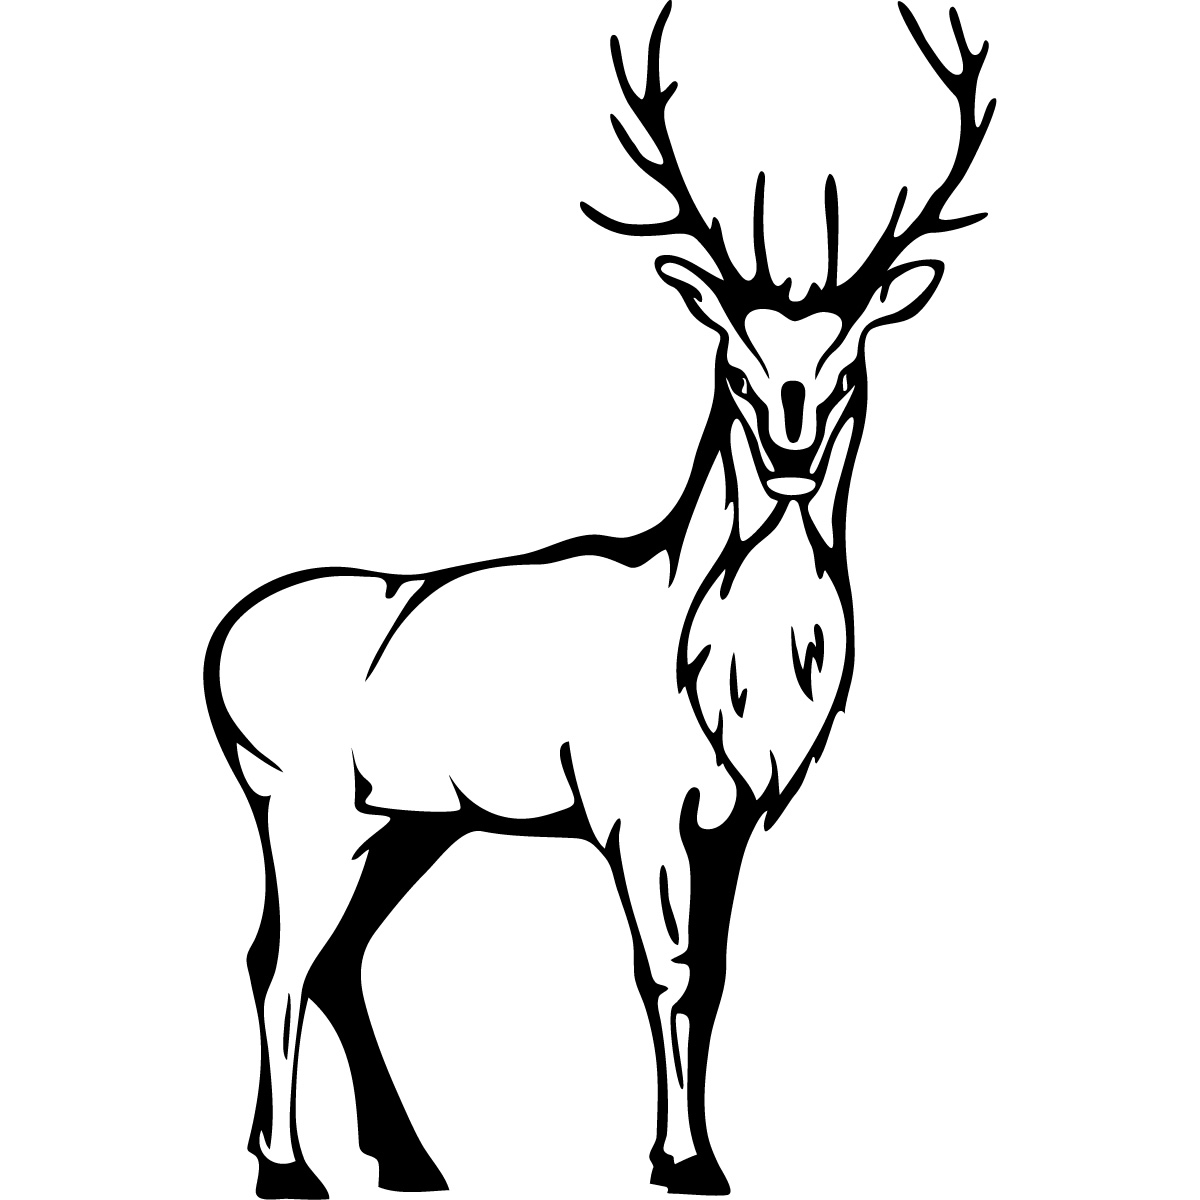 Line Drawings Of Animals Deer : Deer line art cliparts